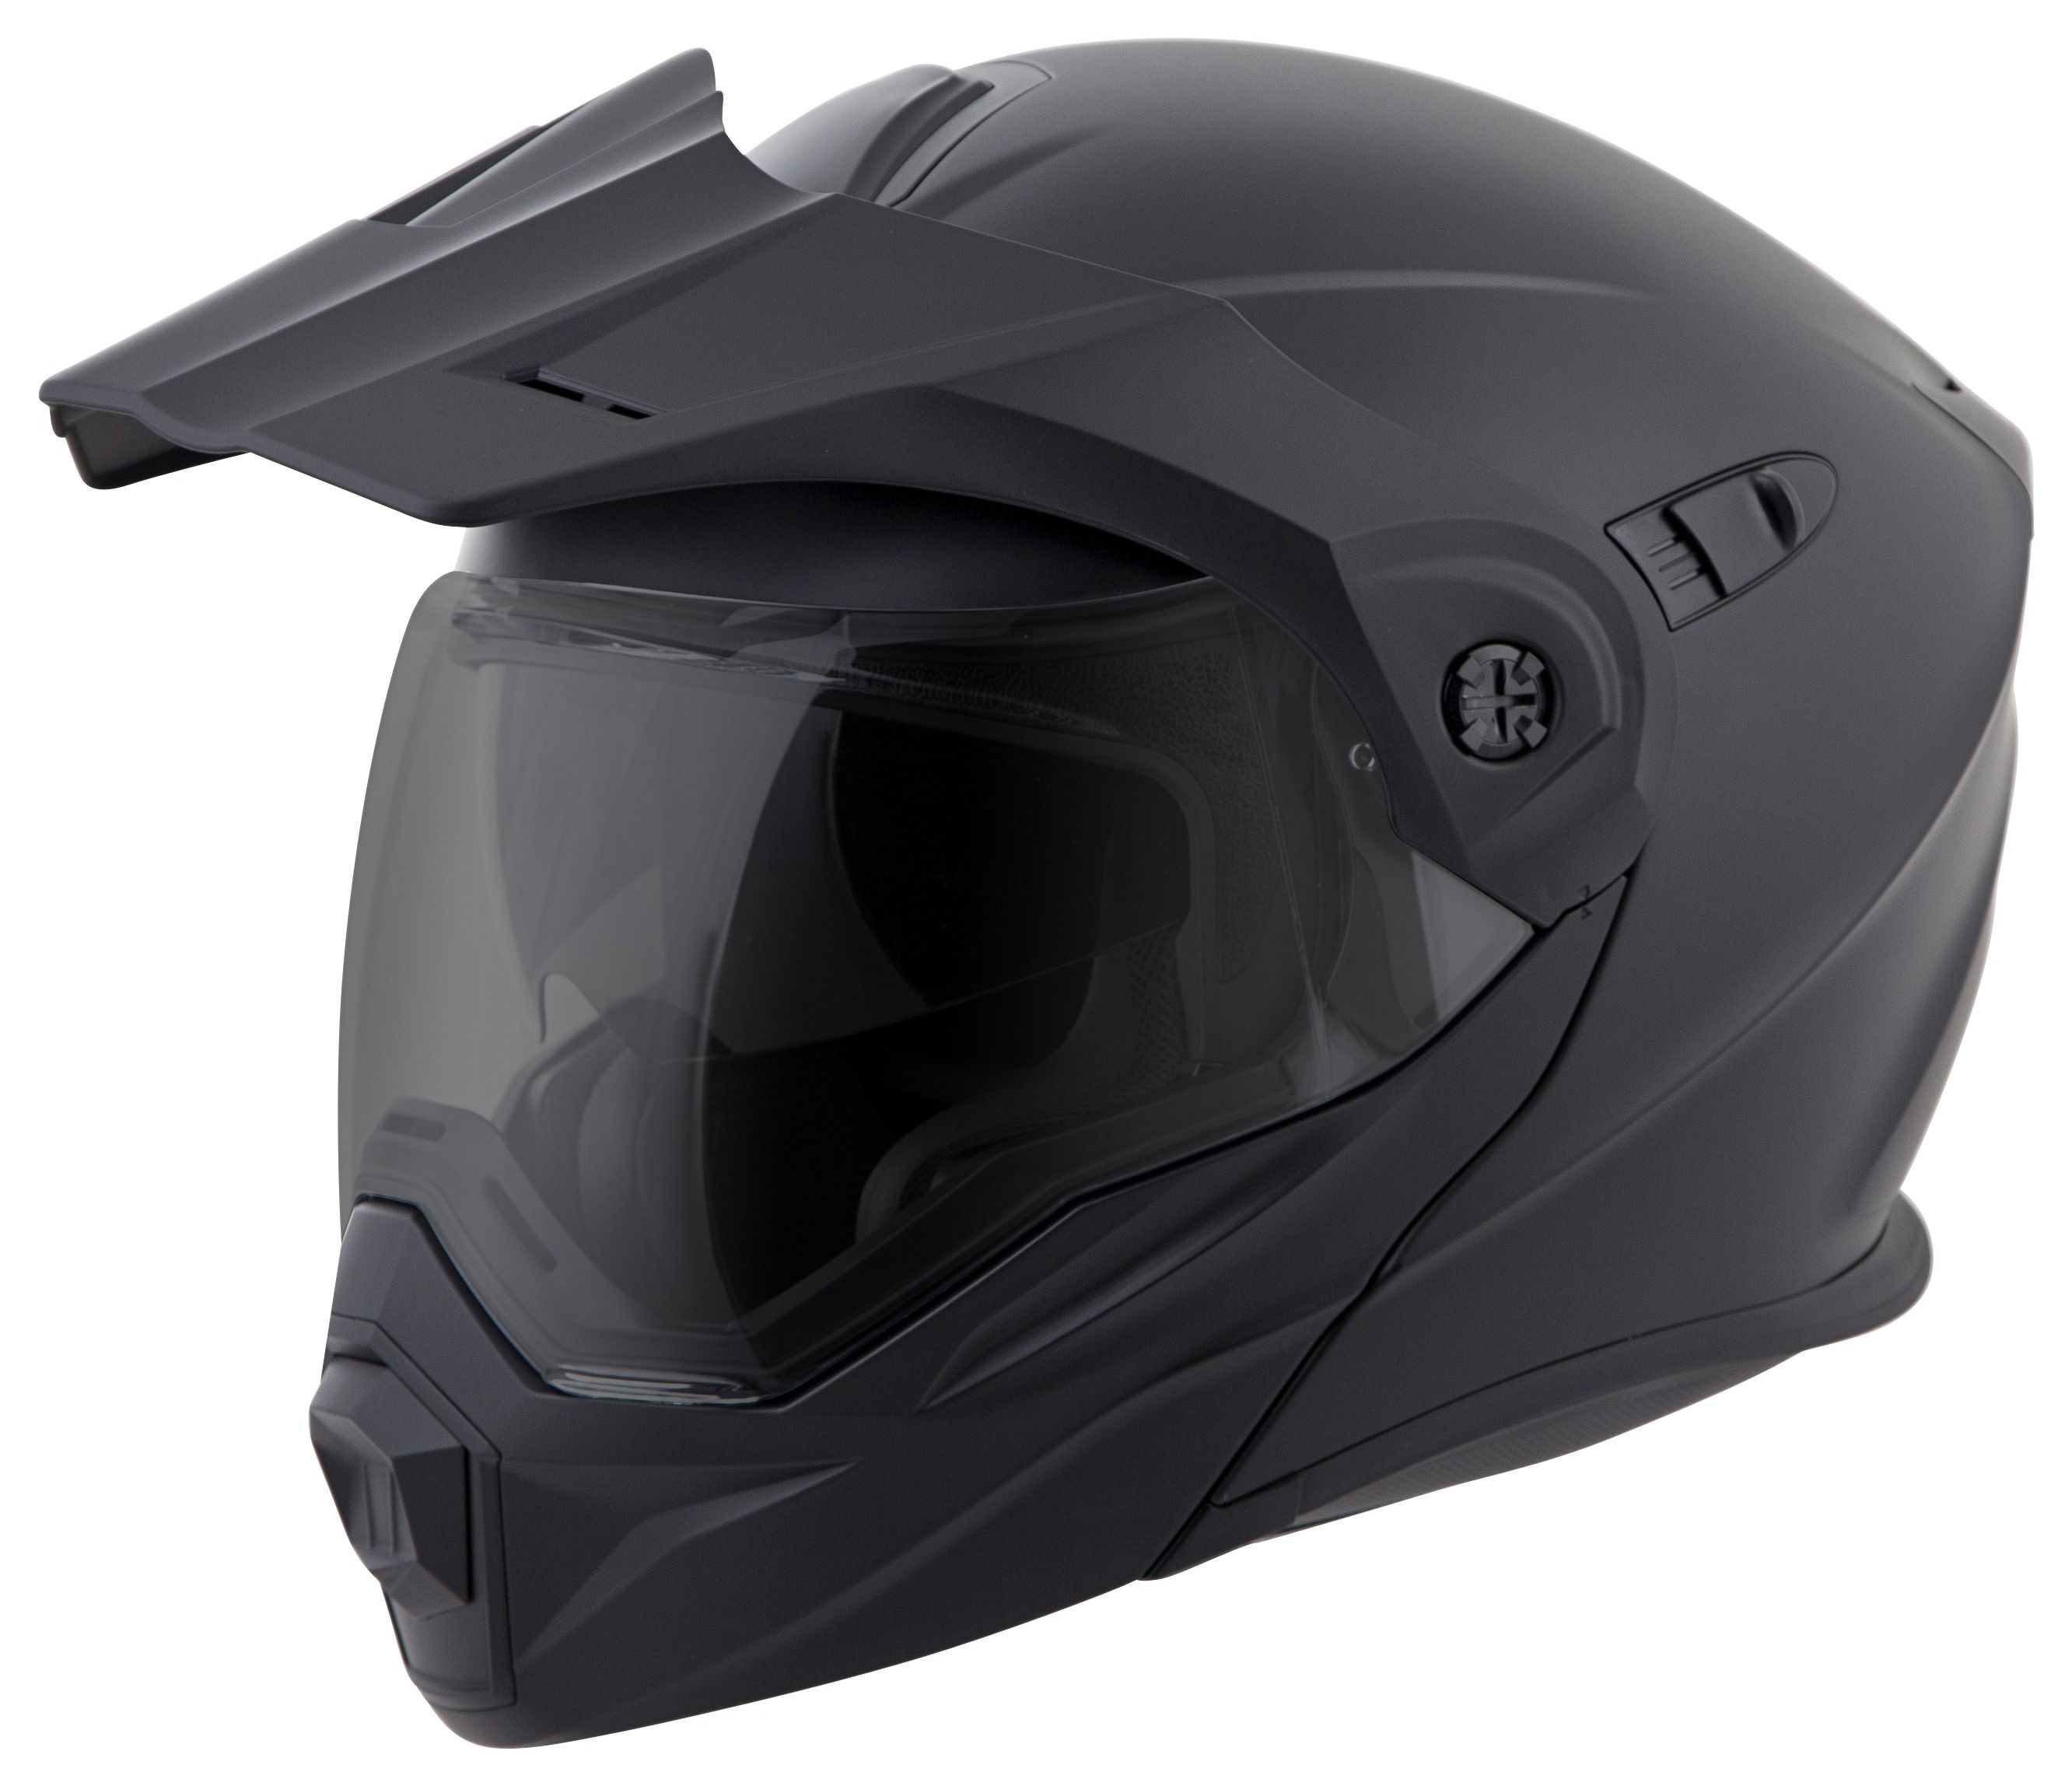 e67c3693 Scorpion EXO-AT950 Helmet - RevZilla